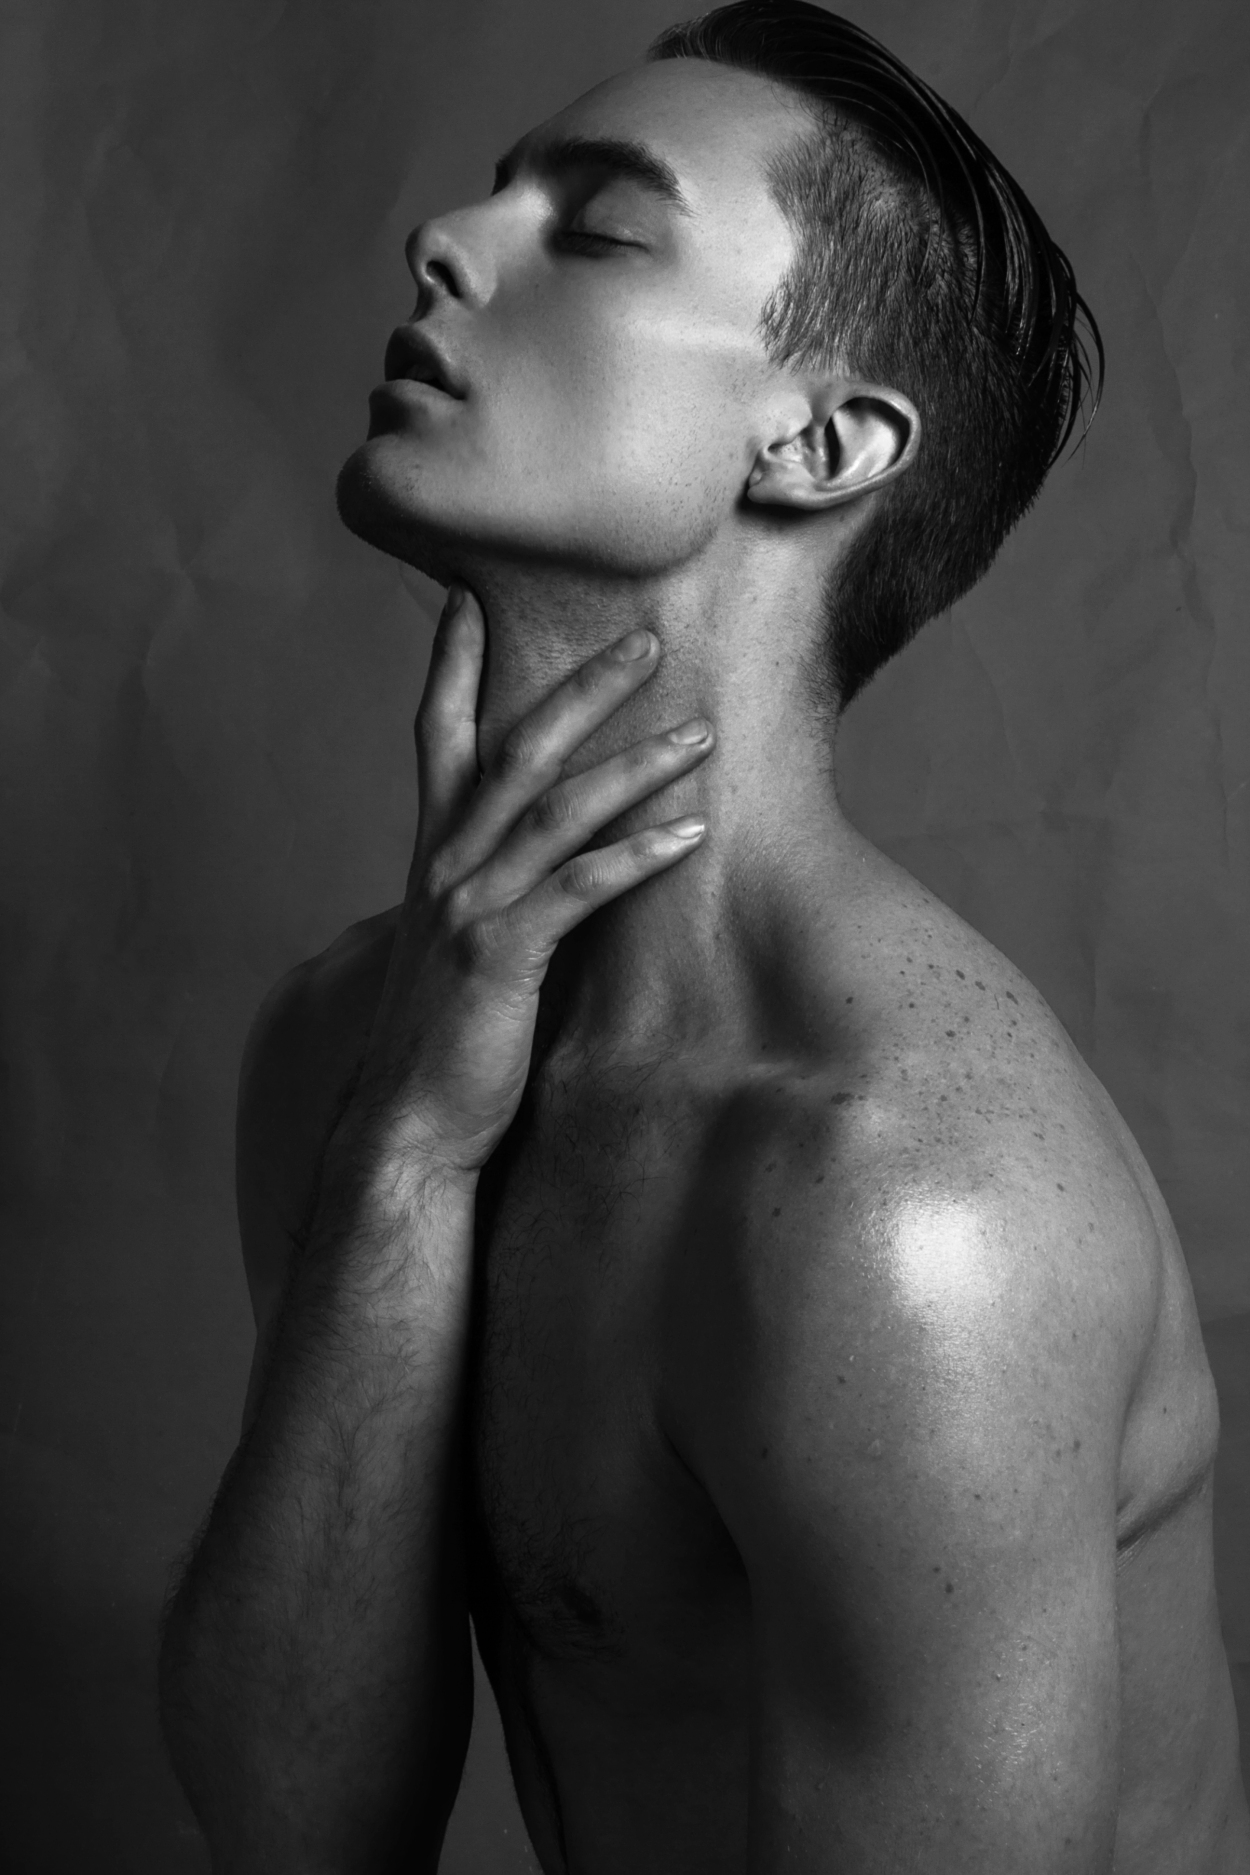 Black and white portrait with divine Edward Alan sublime captured by Balthier Corfi in New York City.